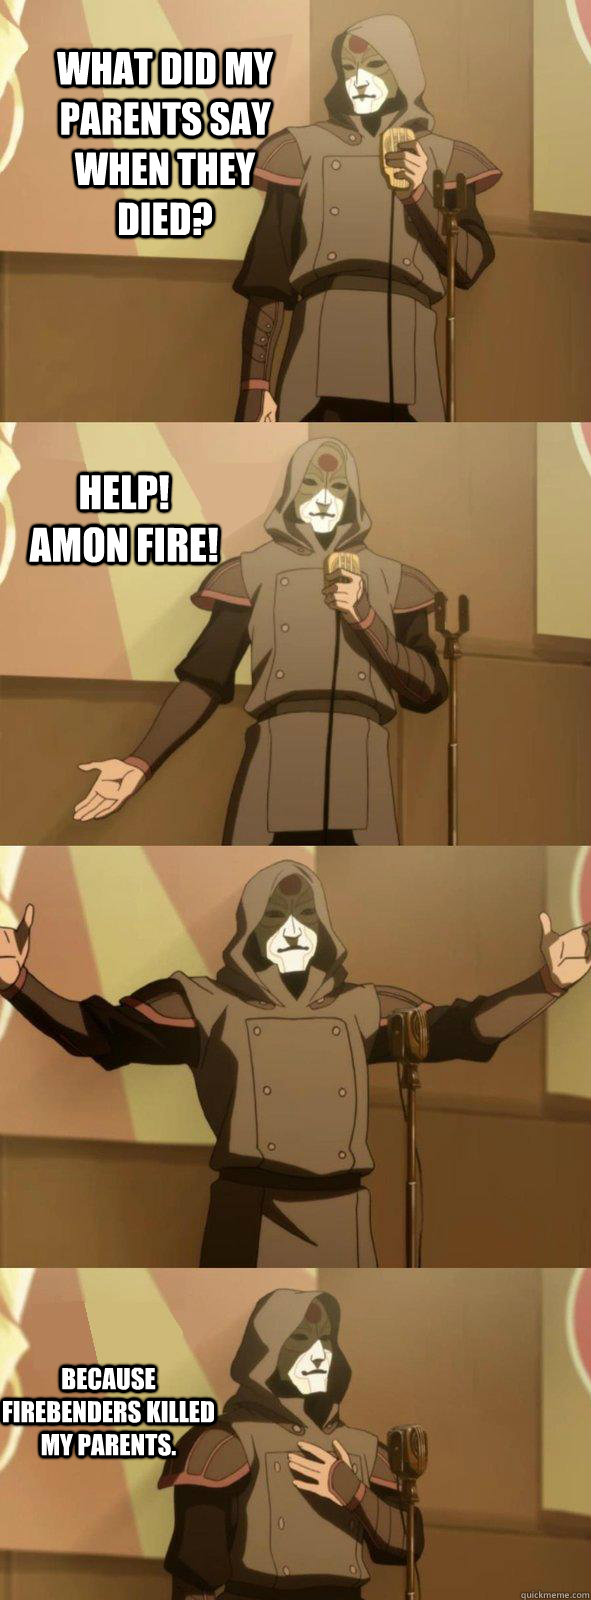 What did my parents say when they died? Because firebenders killed my parents. Help! Amon fire!  Bad Joke Amon